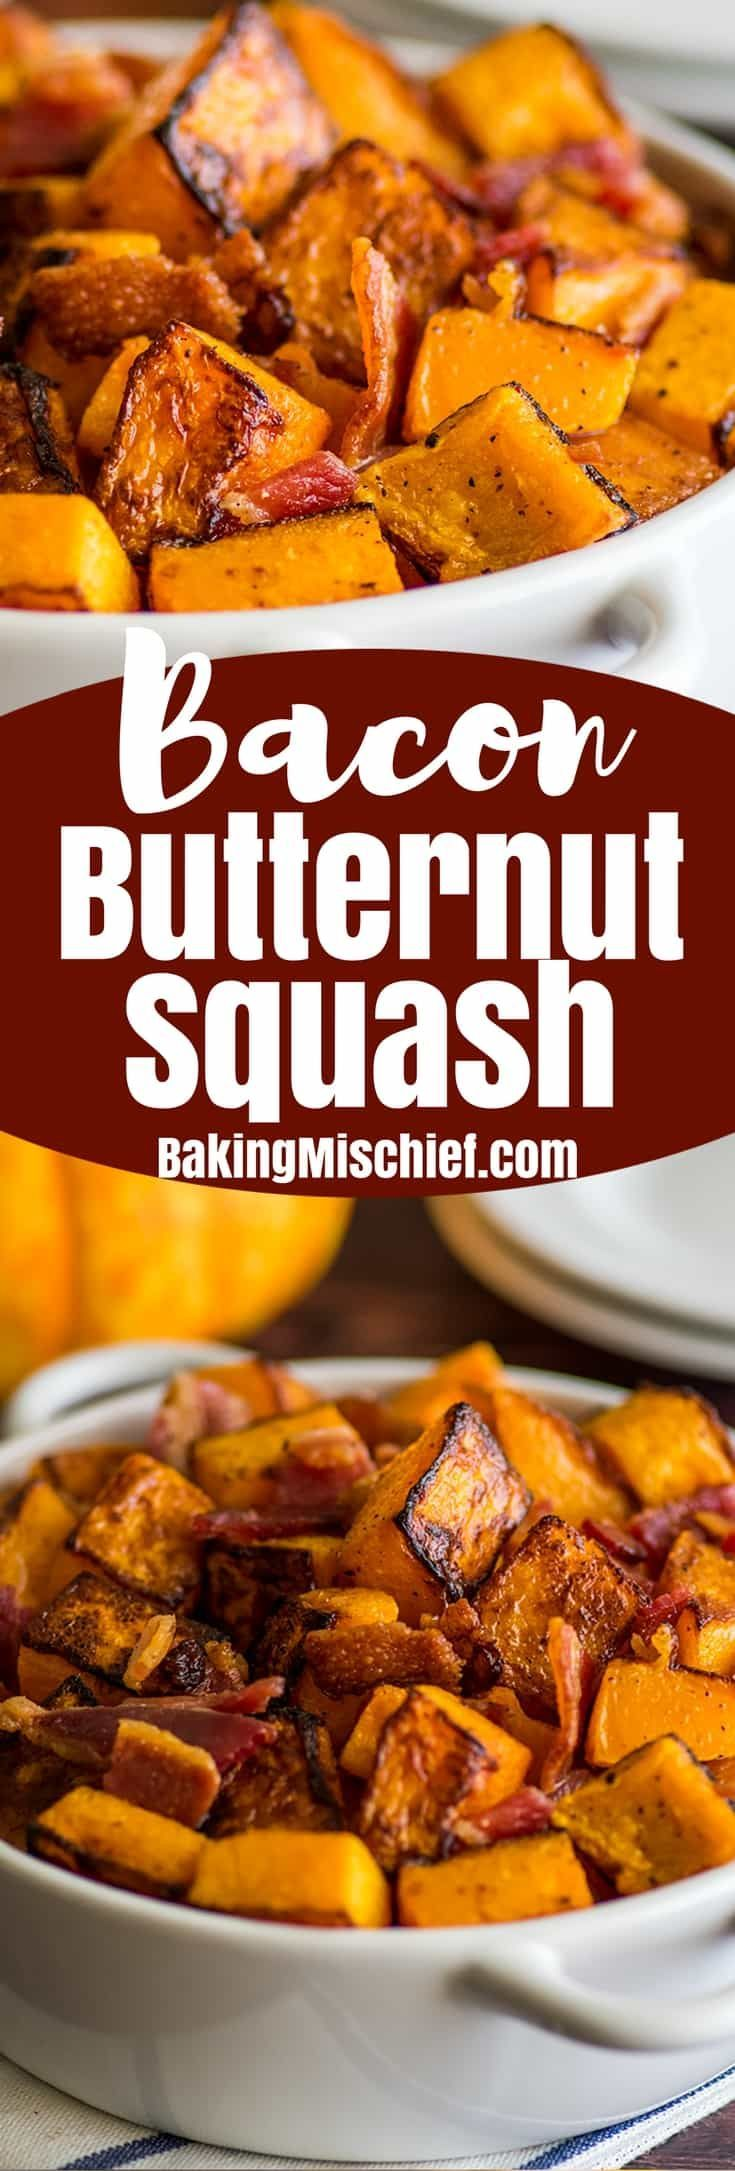 This Roasted Bacon and Butternut Squash Side Dish is the perfect easy, no-fail fall side. | Easy Side Dishes | Recipes for Two | #FallRecipes |